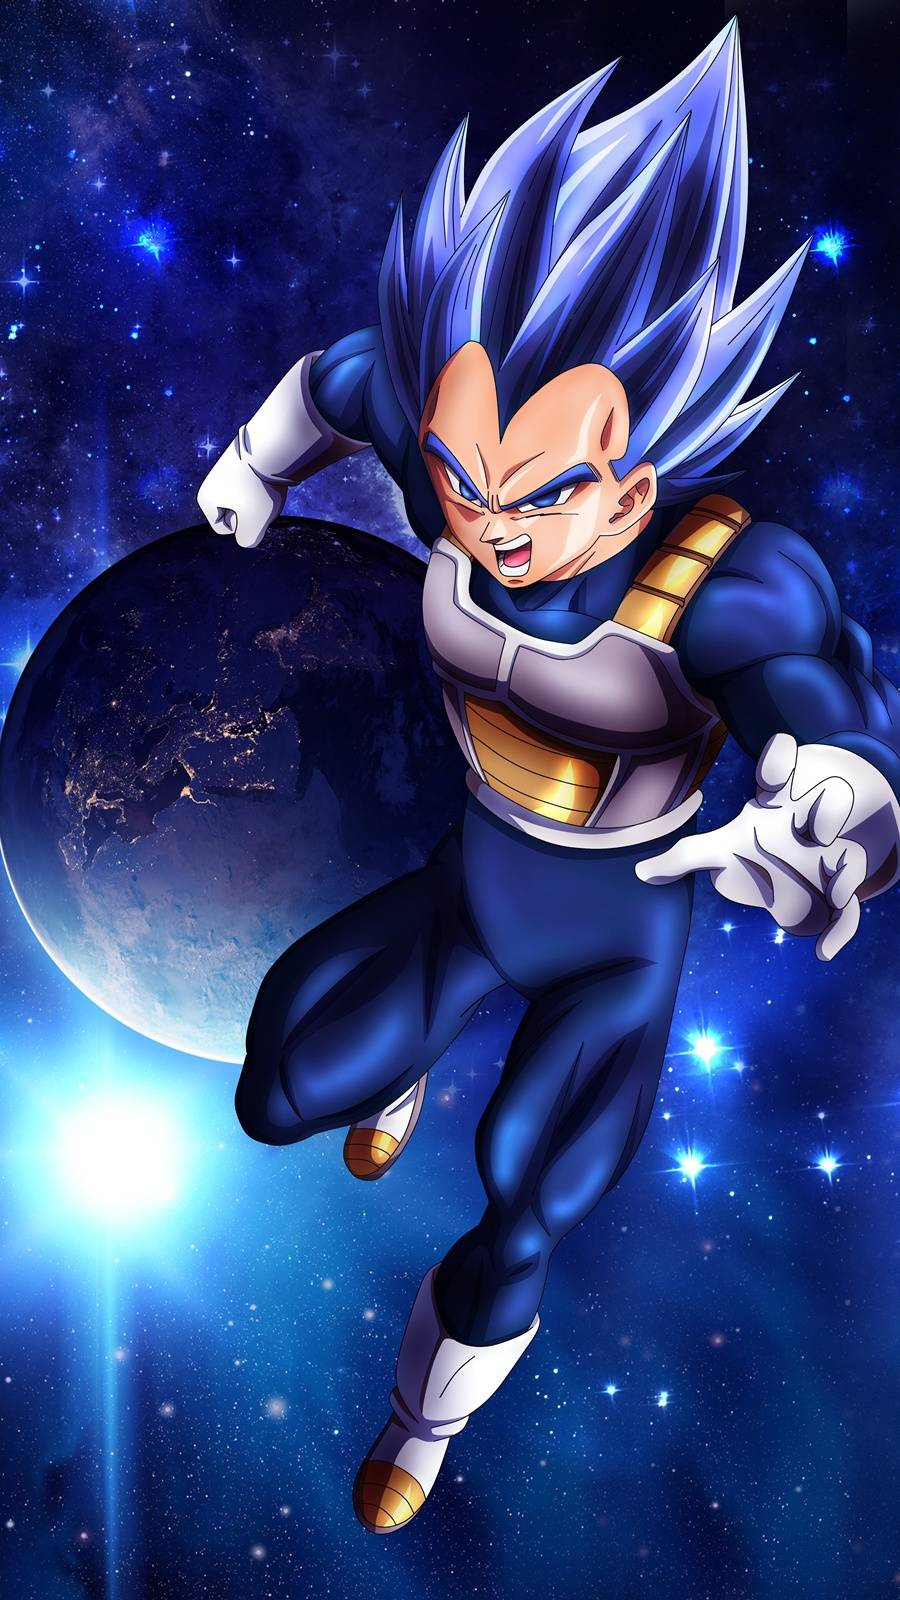 Dragon Ball Z Vegeta Wallpaper Iphone Gdlawct Com